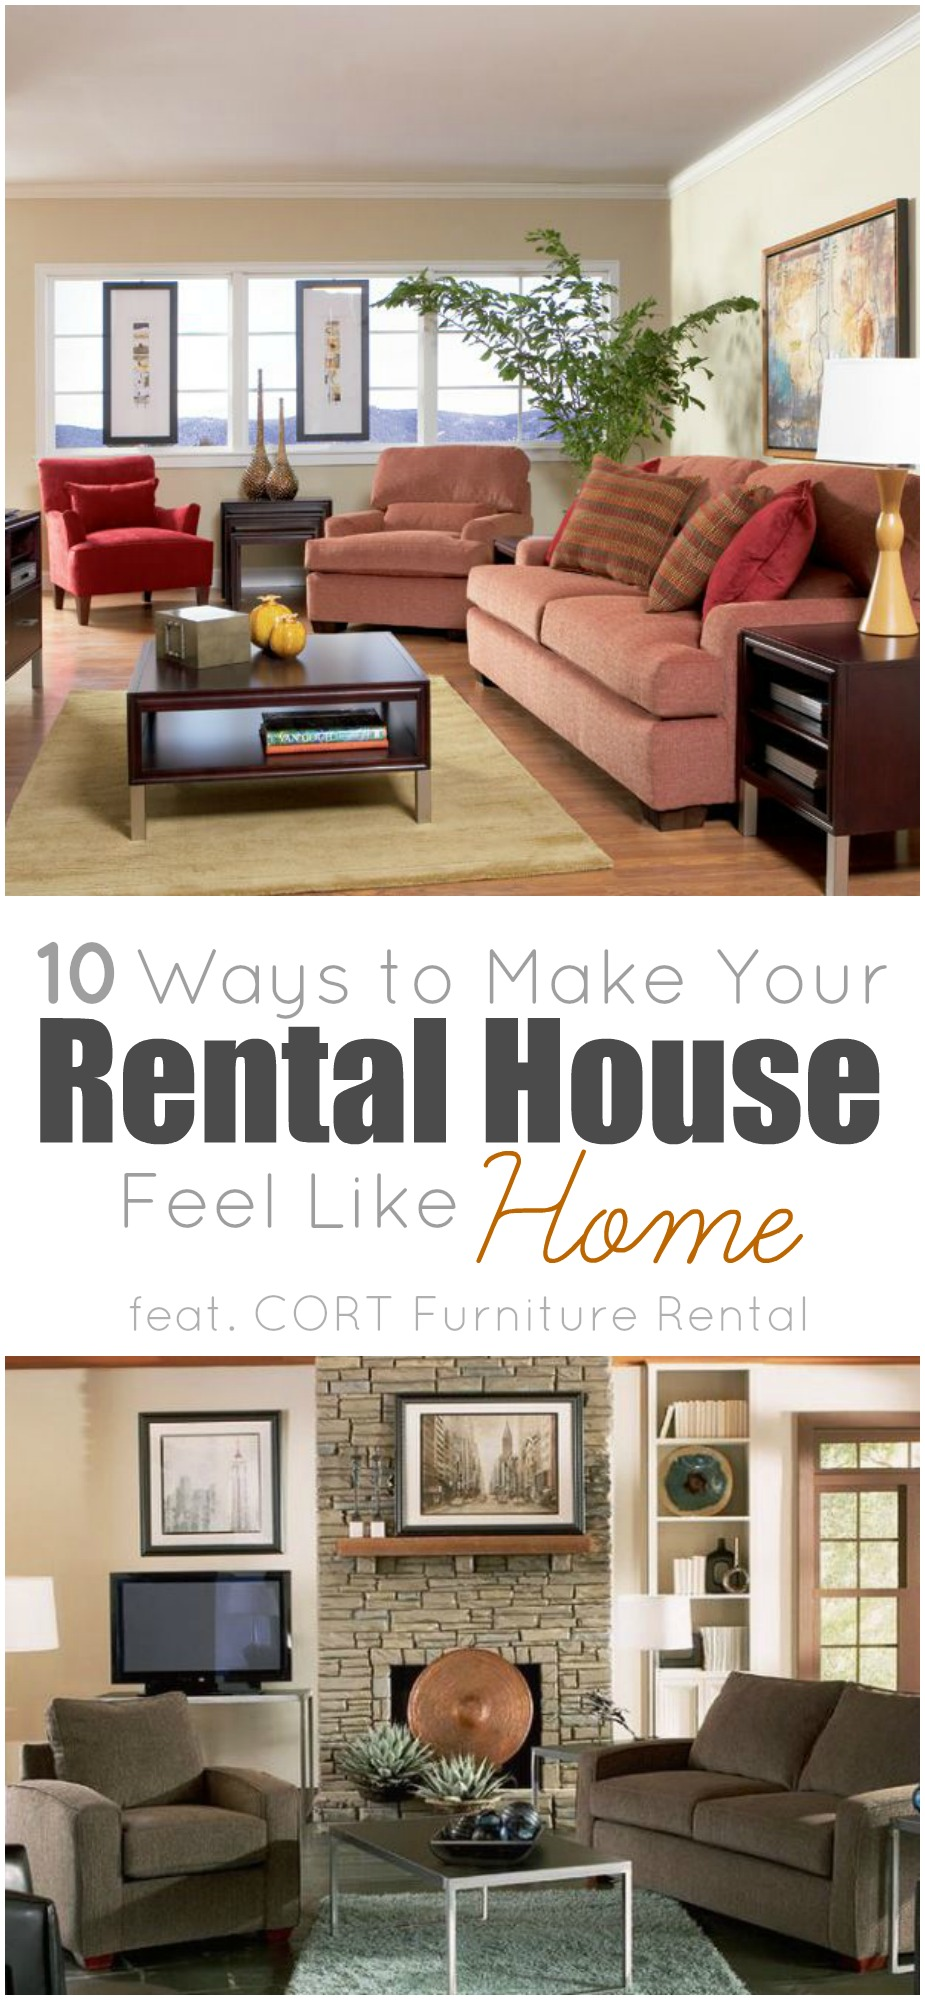 10 Ways To Make Your Rental House Feel Like Home